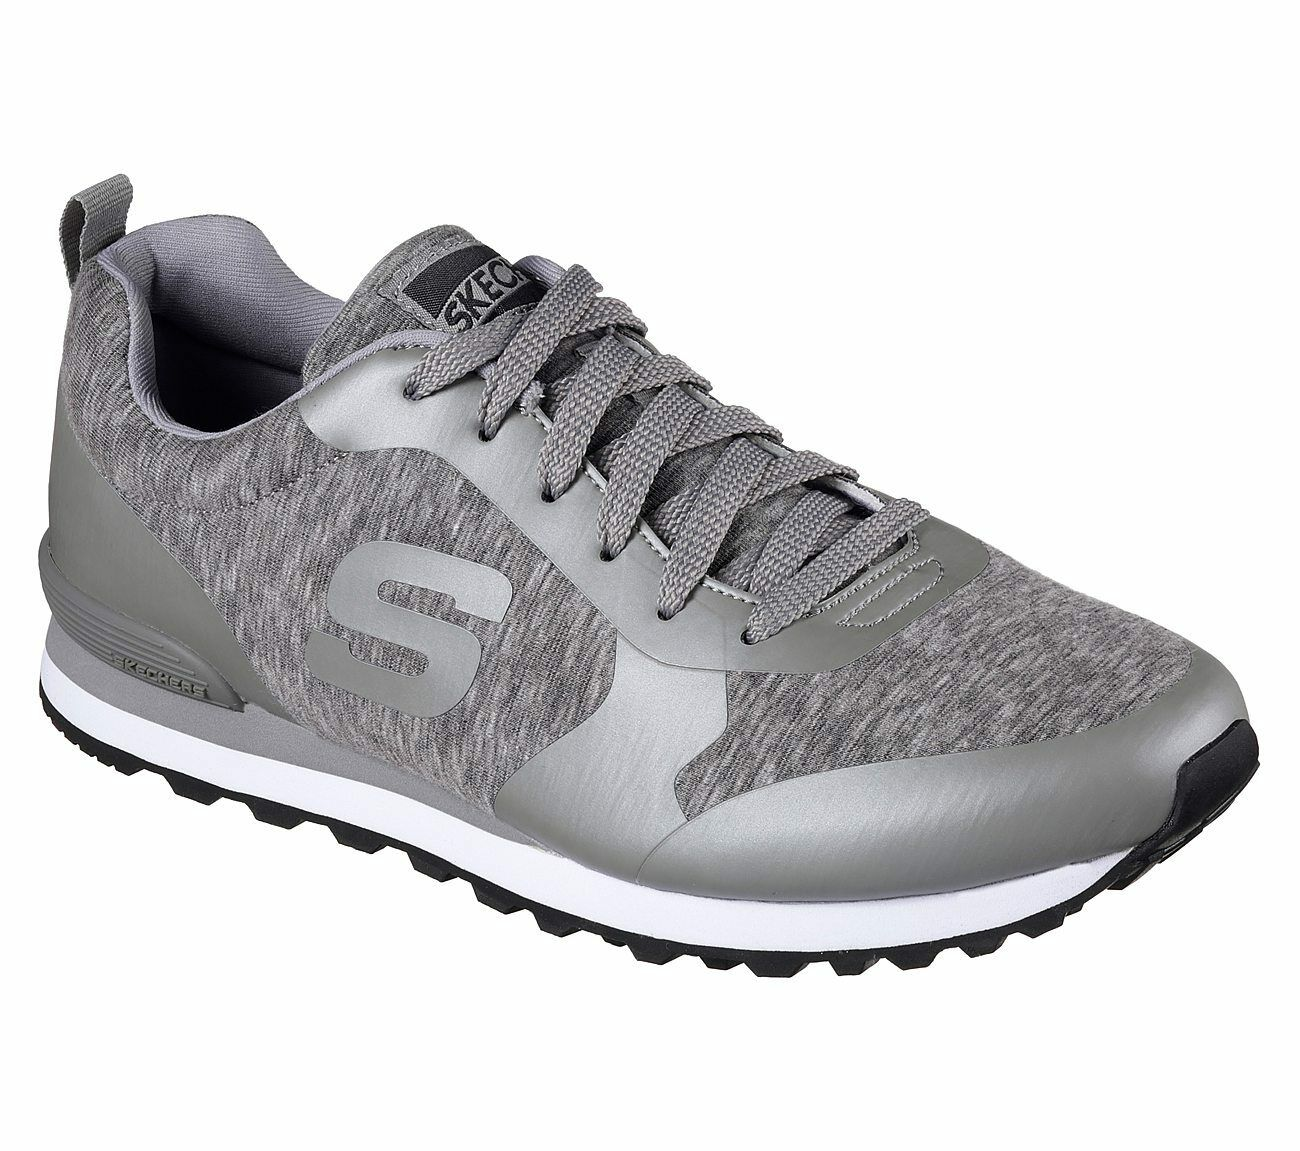 Skechers 52312GRY Men's OG 85 - KEACH Training Shoes BR# Wild casual shoes